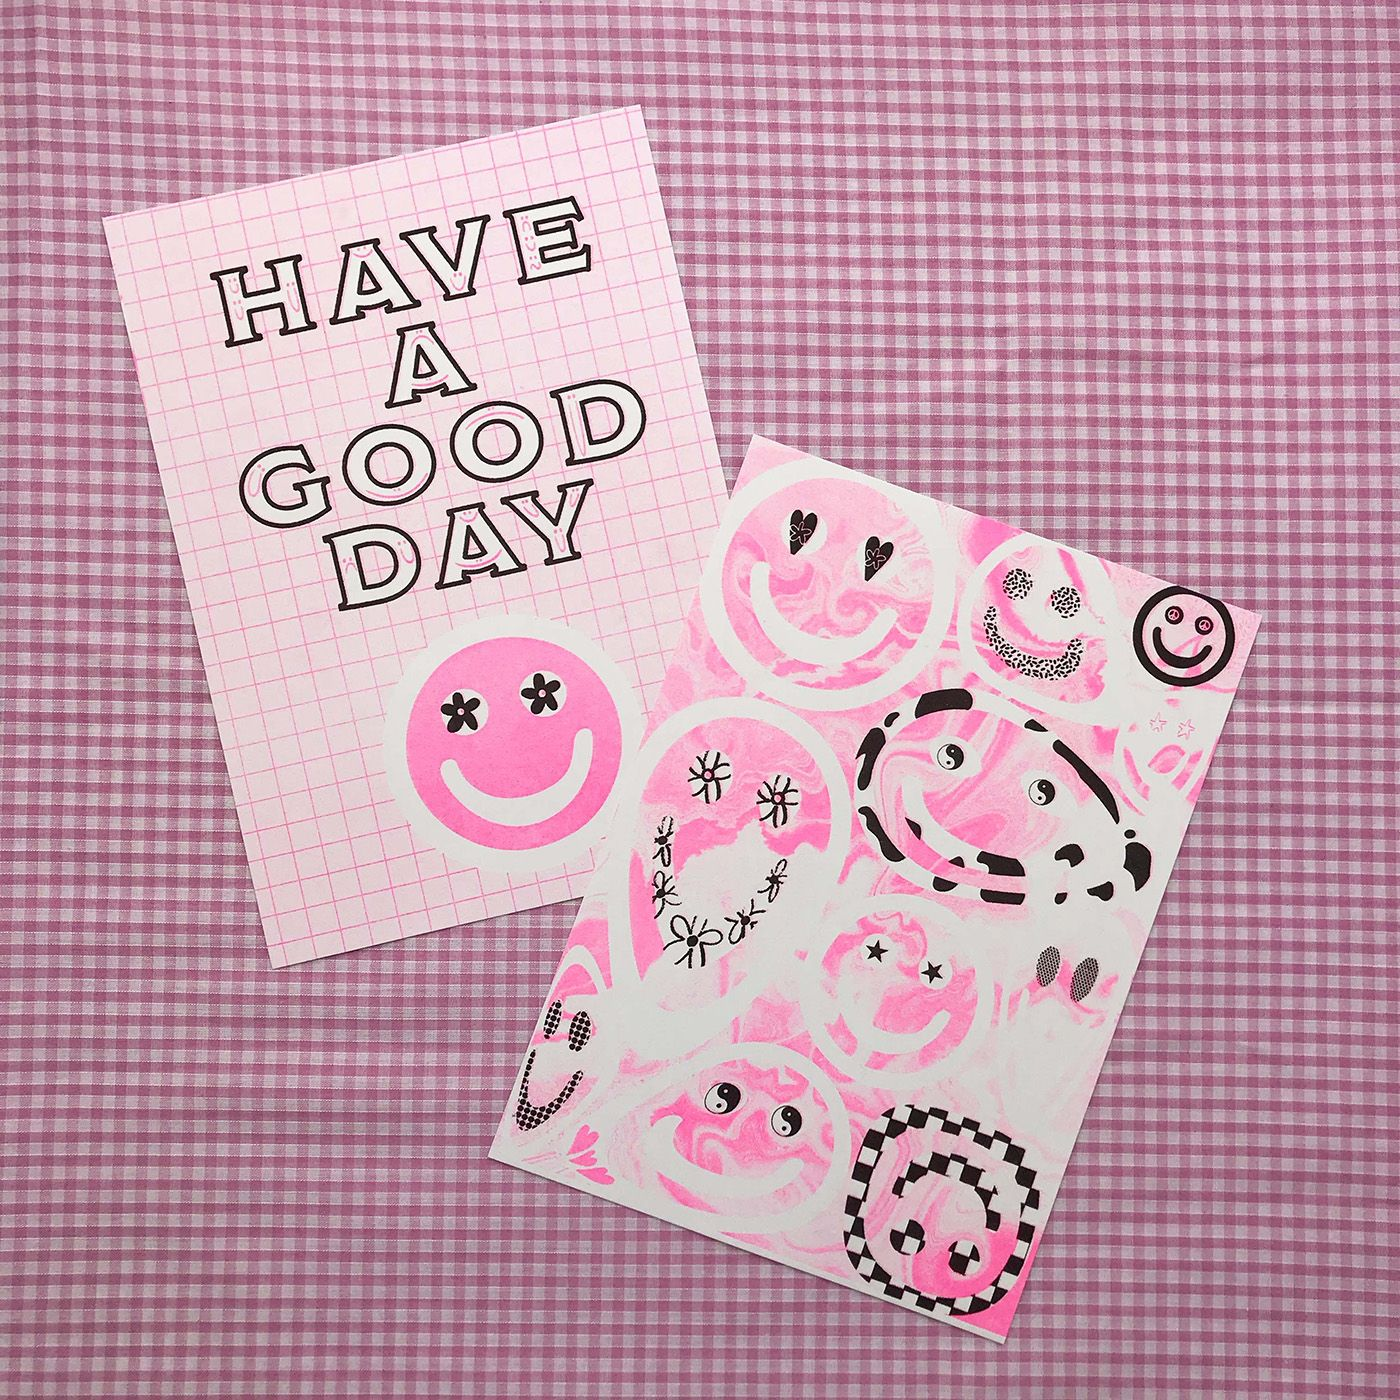 Have a good day :) - 2 X A5 risograph prints